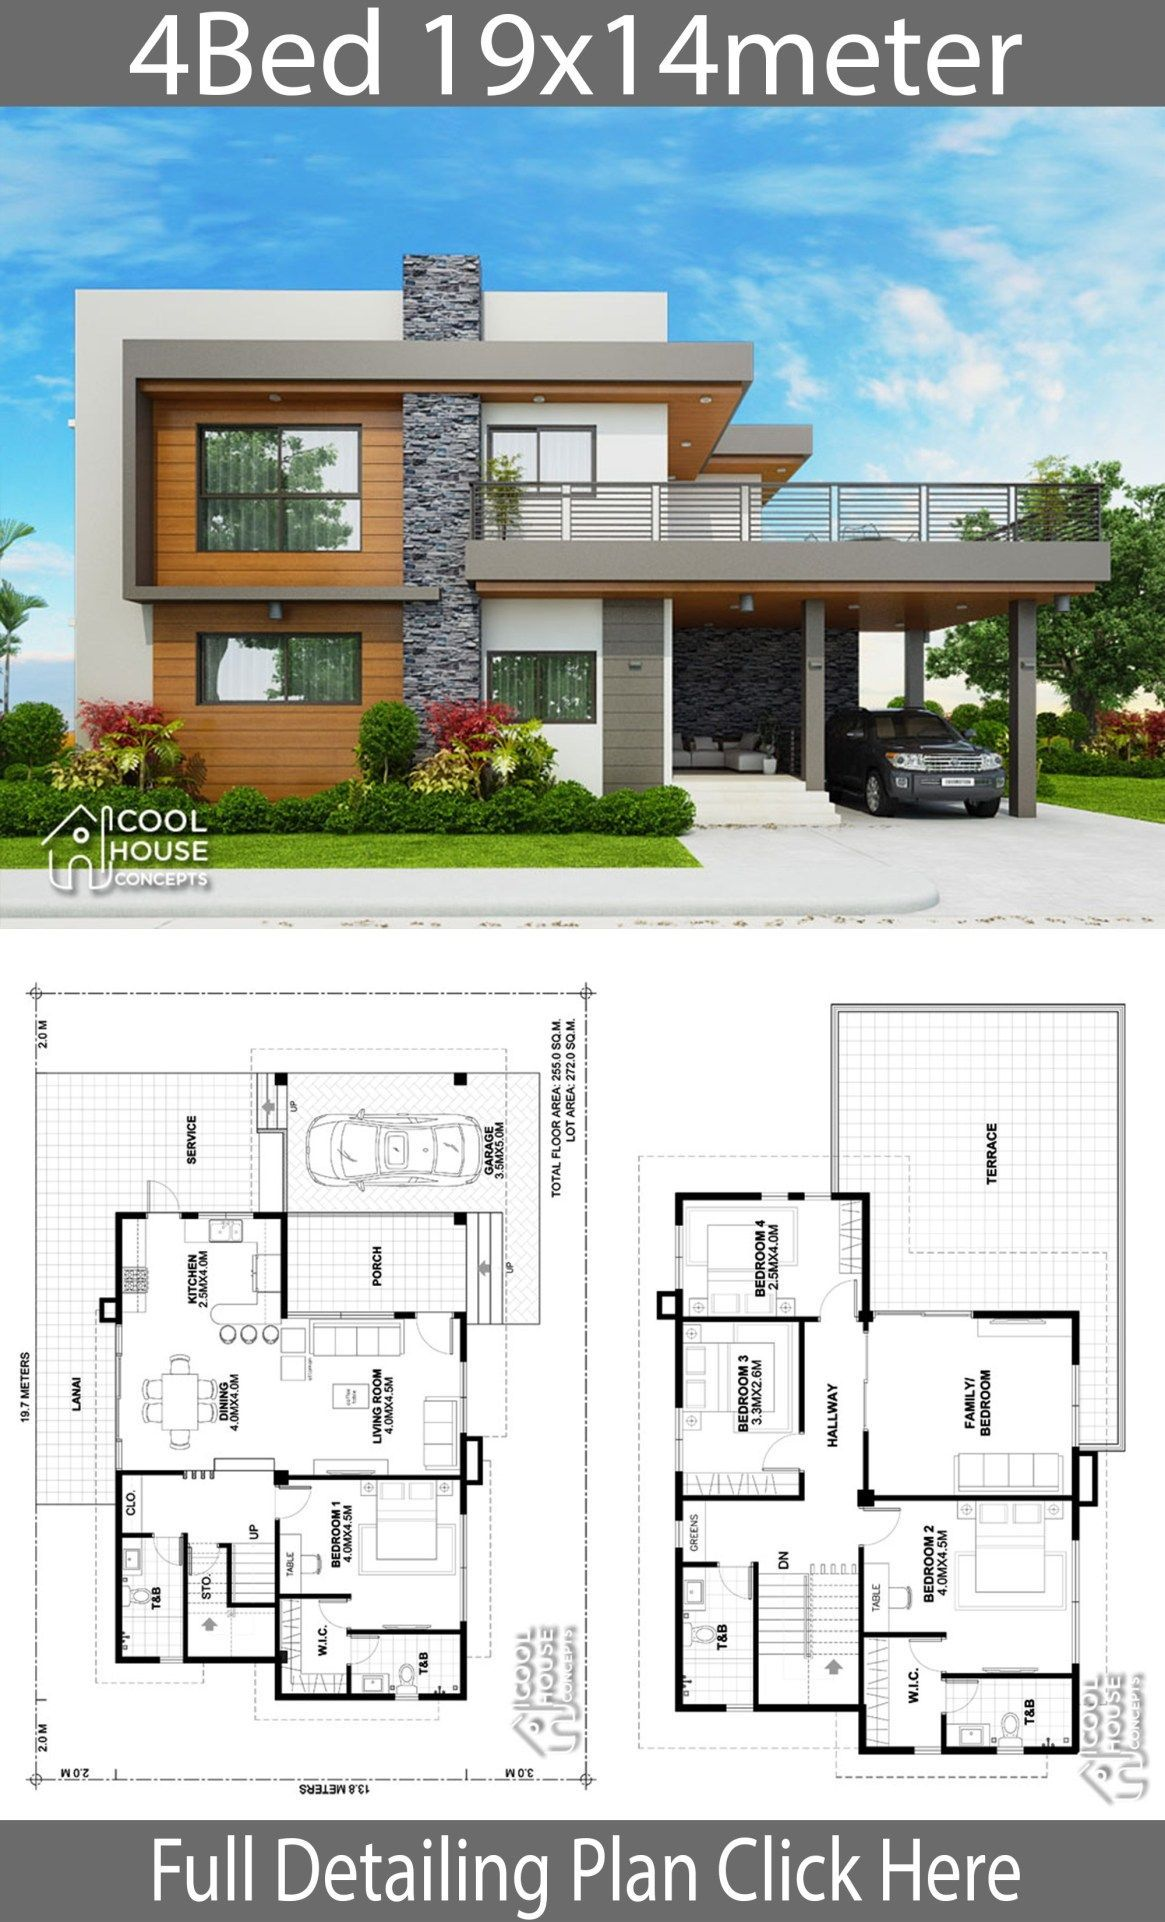 Home Design Plan 19x14m With 4 Bedrooms 19x14m 4 Bedrooms Design Home Plan With Duplex House Design Home Design Plan House Layout Plans